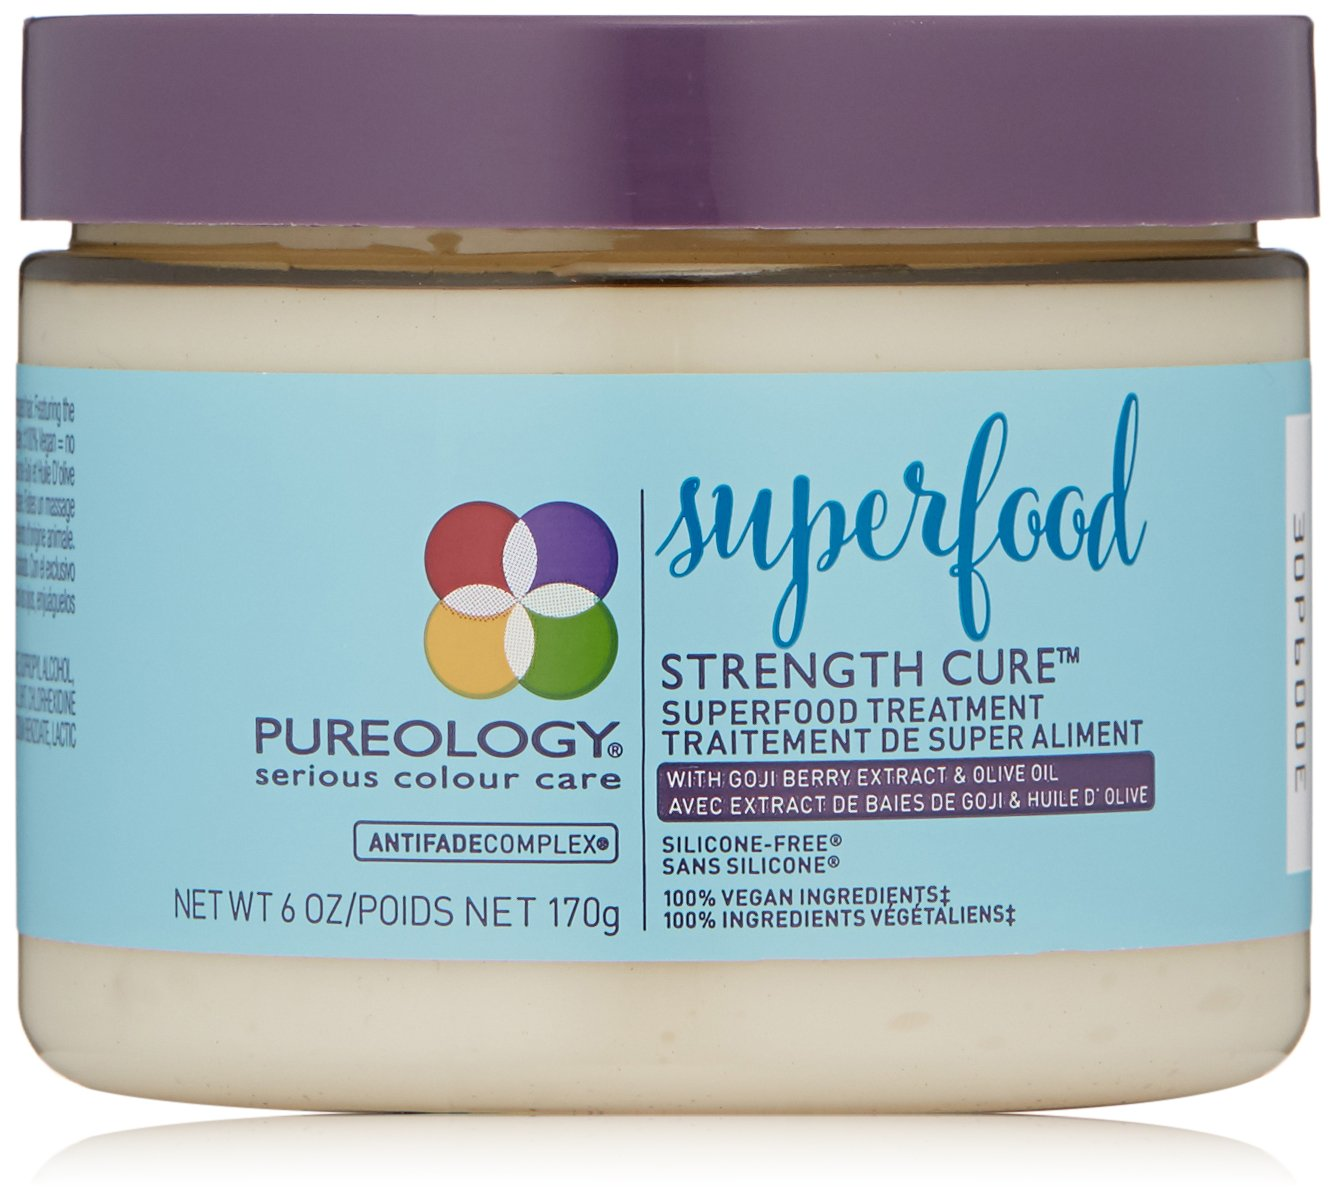 Pureology Superfood Strength Cure Treatment by Pureology